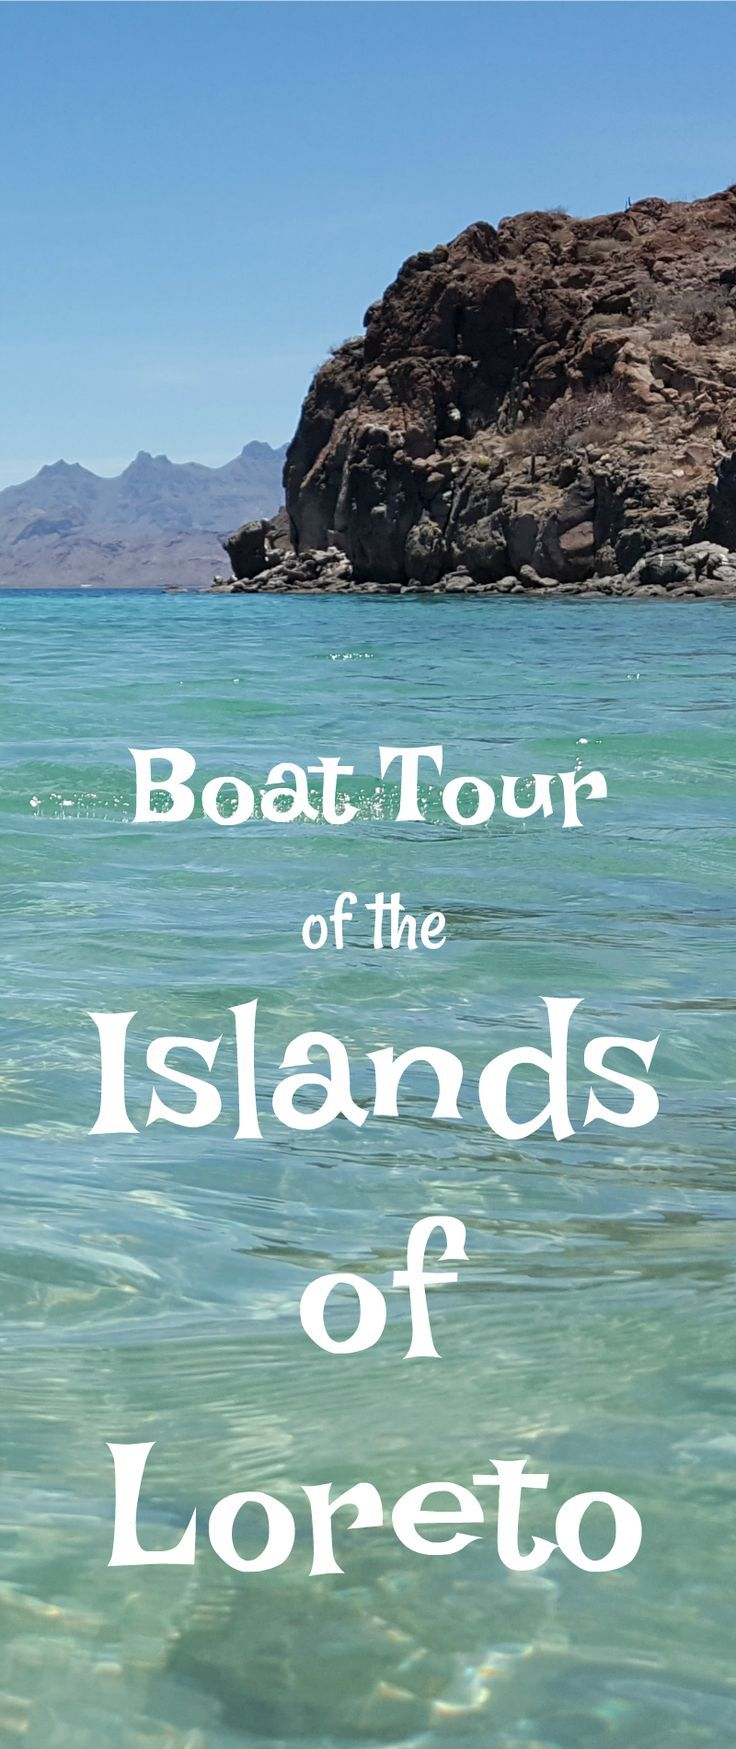 Boat Tour of The Islands of Loreto – Sea of Cortez, Baja California Sur, Mexico